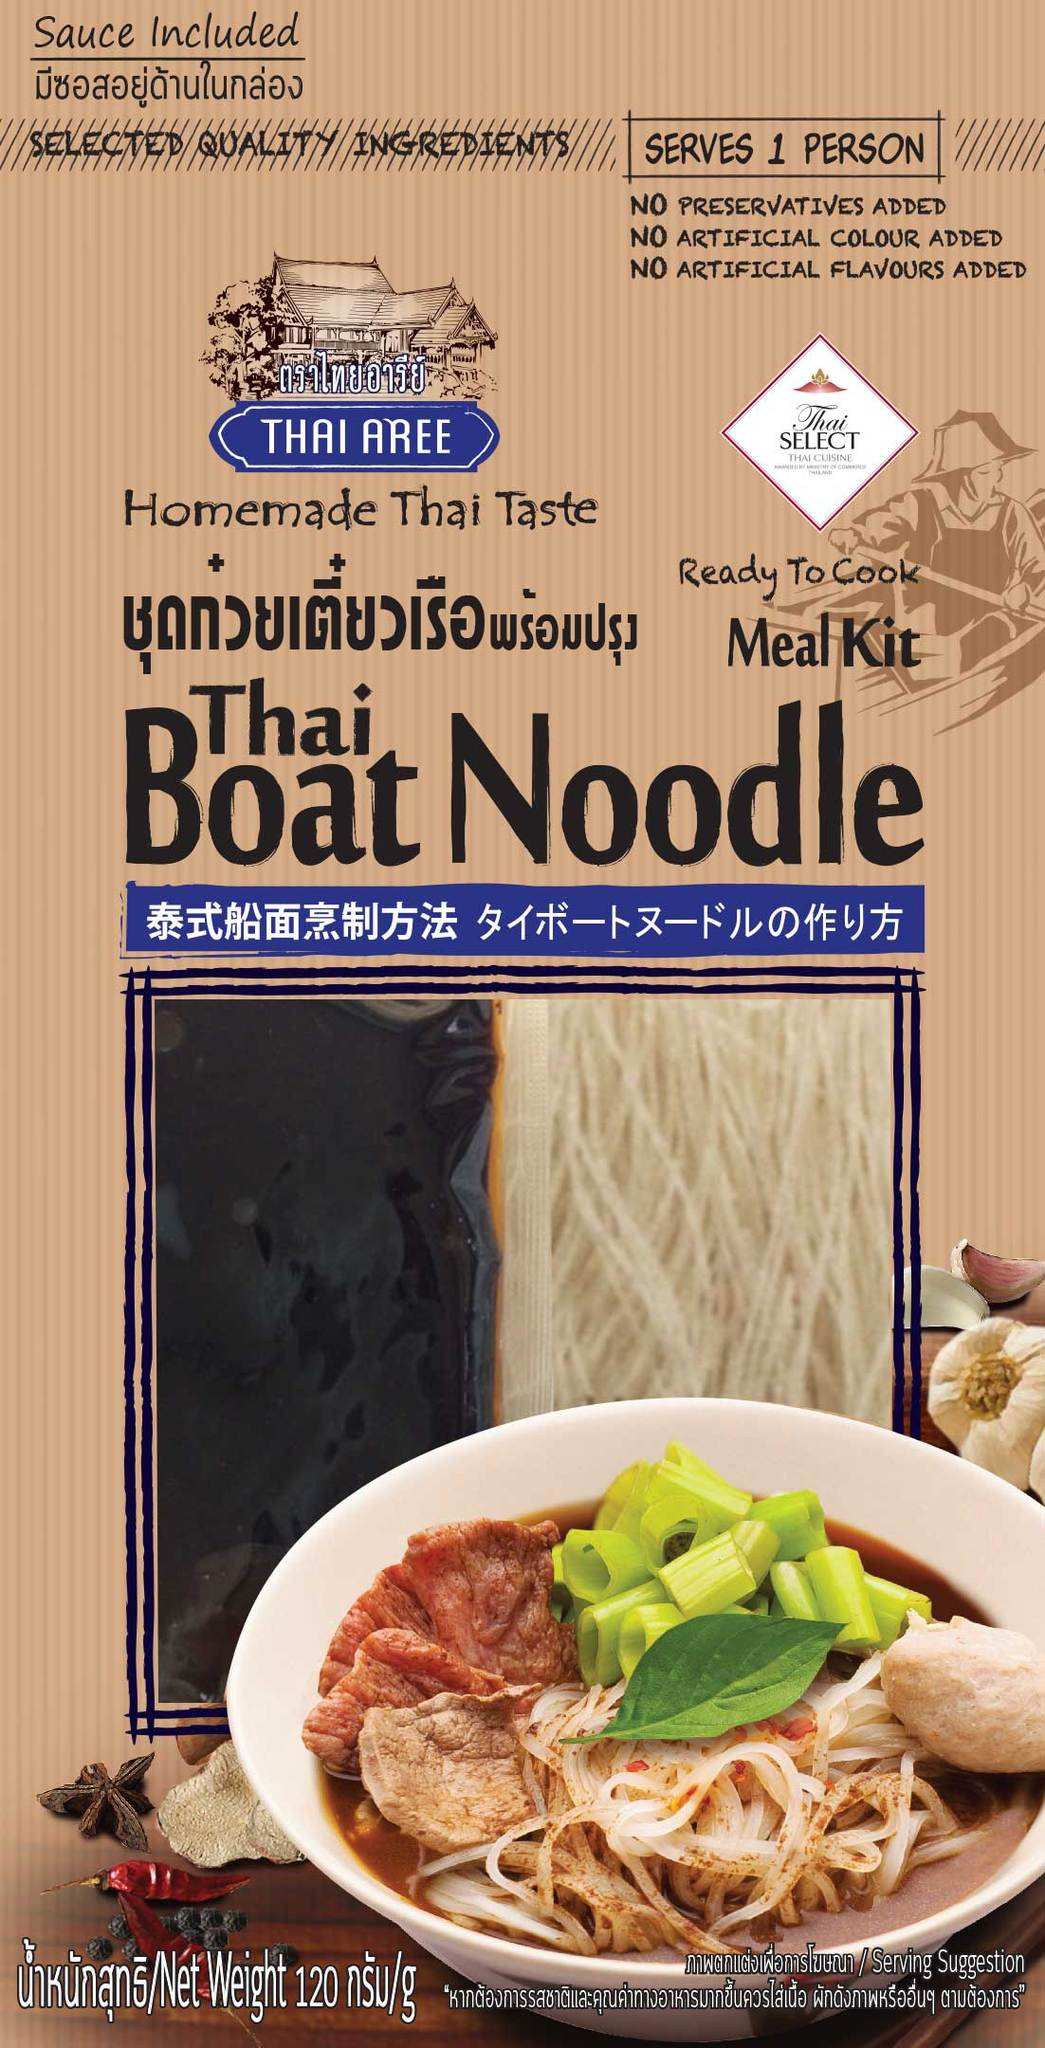 181217 Product-Thai Boat Noodle Meal Kit.jpg